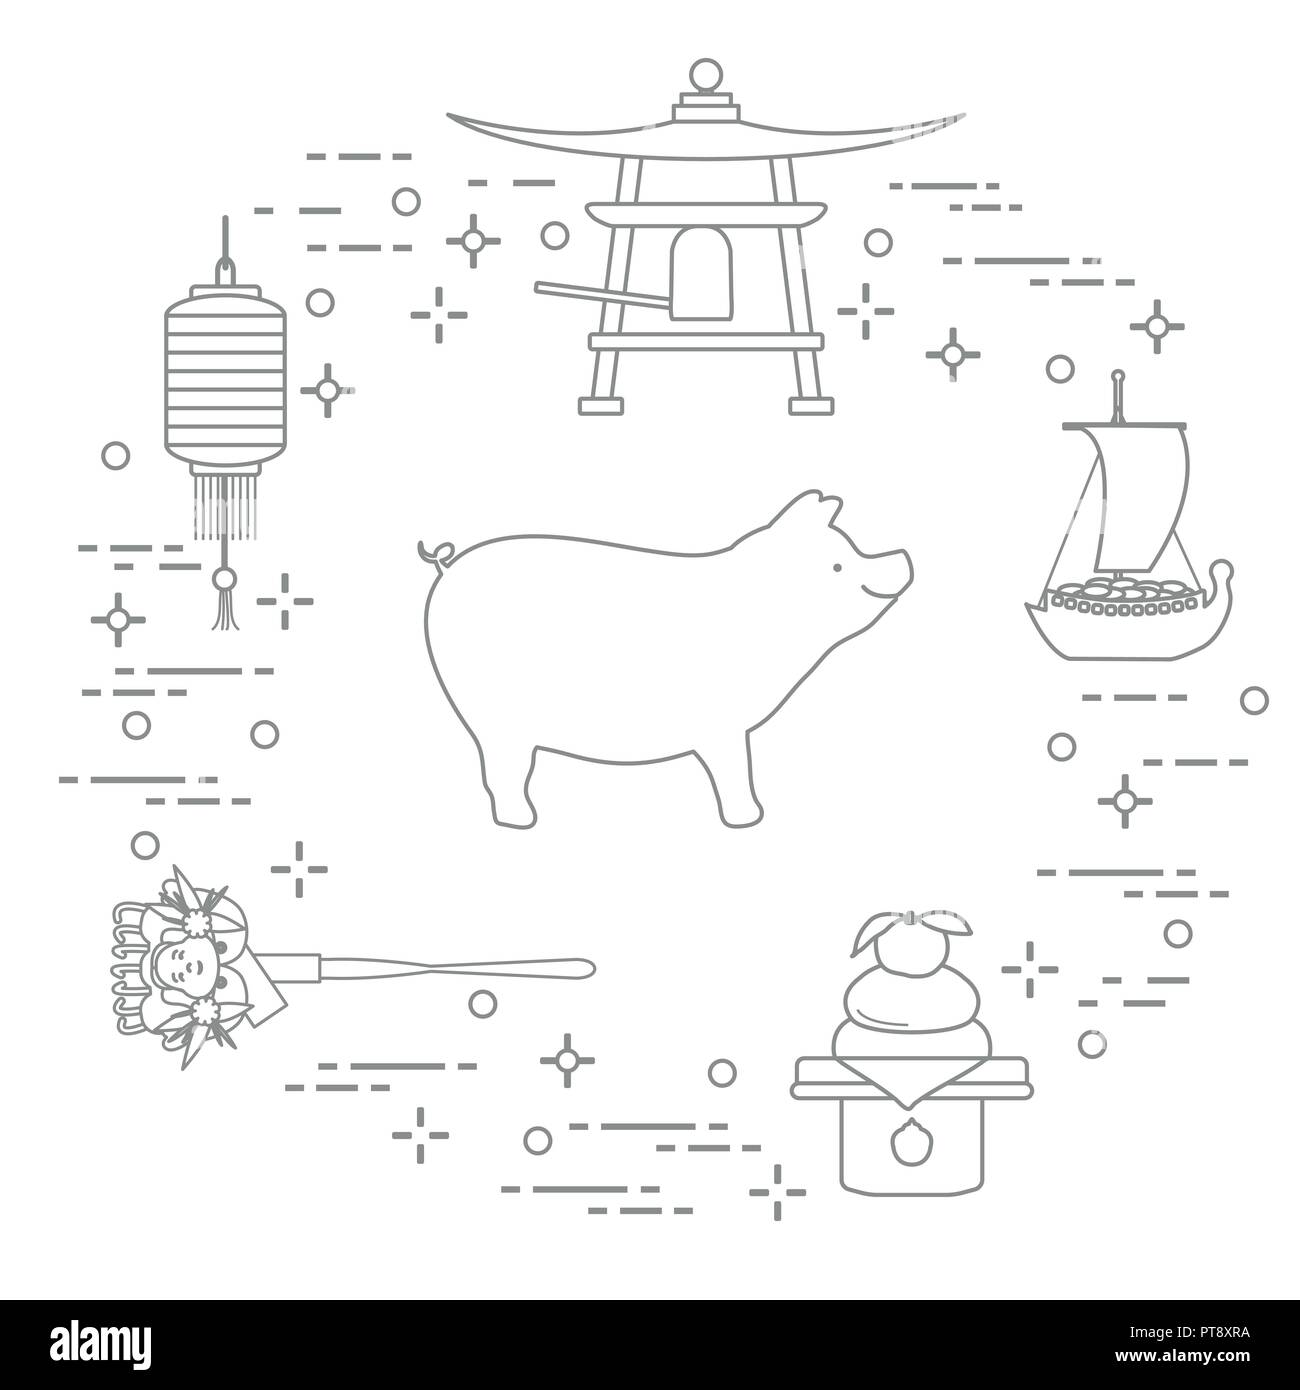 happy new year 2019 card new year symbols in japan boar lantern bell mochi orange treasure ship festive traditions of different countries